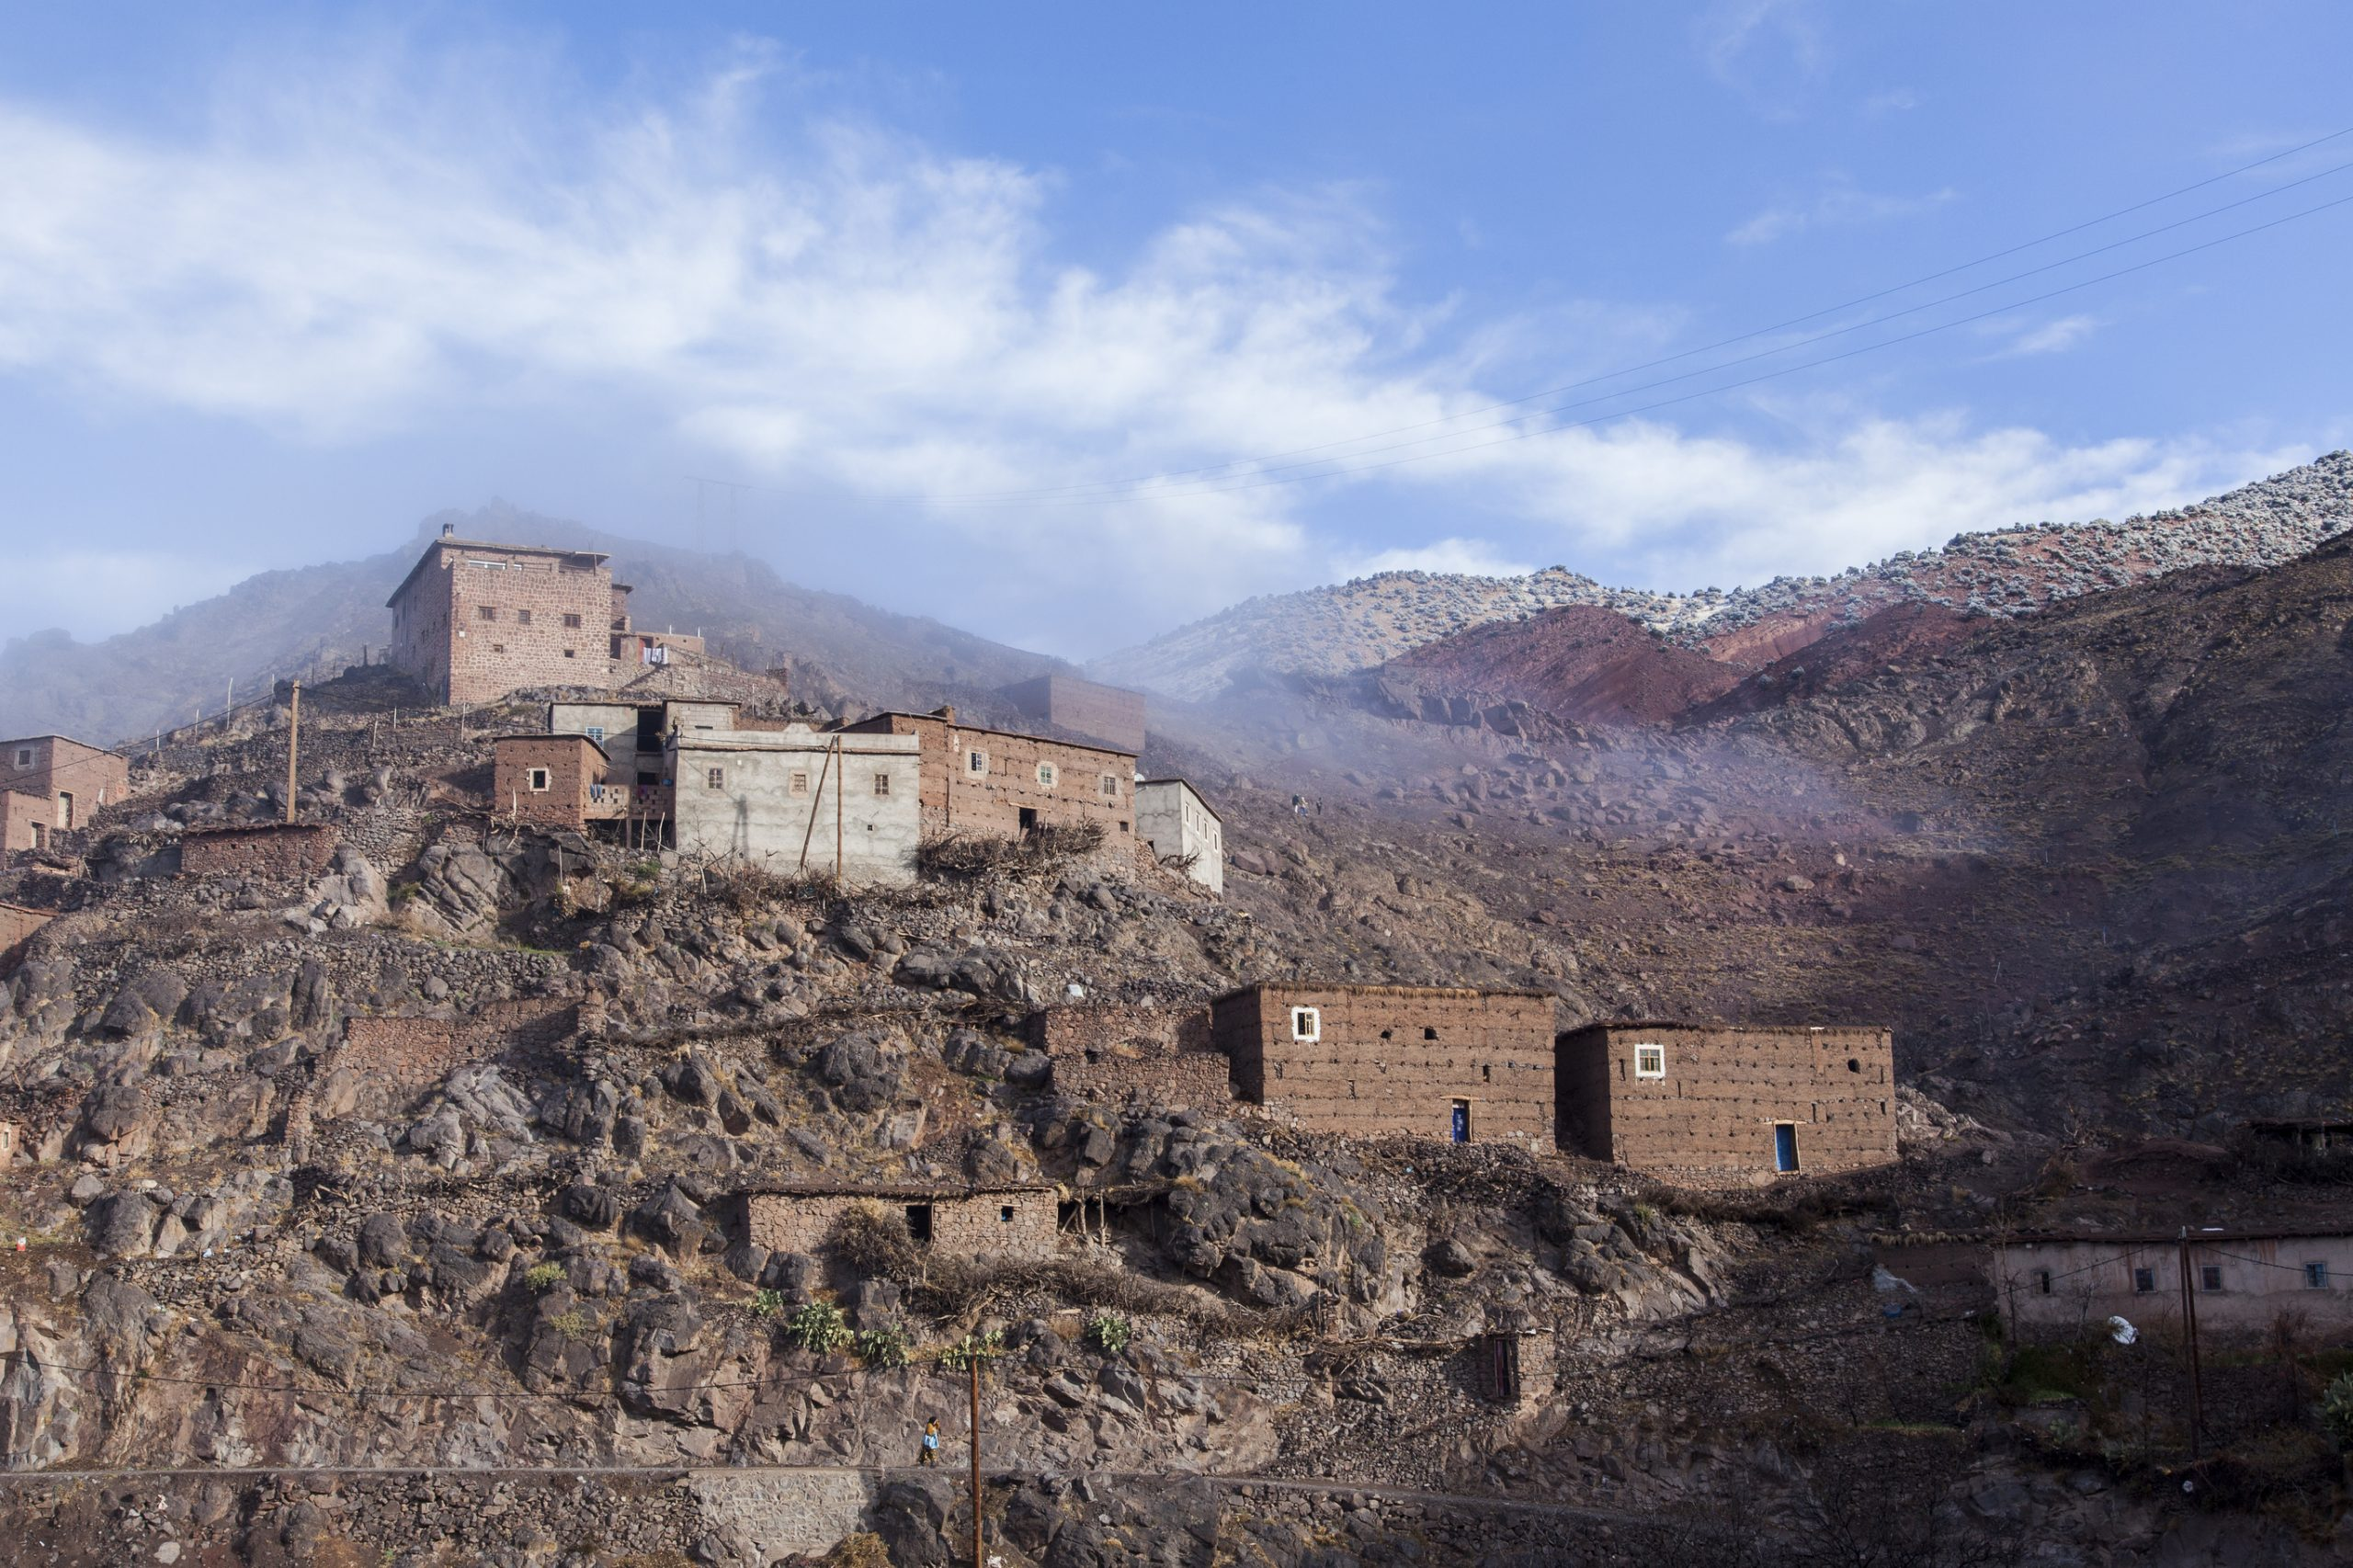 A typical Berber village high in the Atlas Mountains shrouded by mist